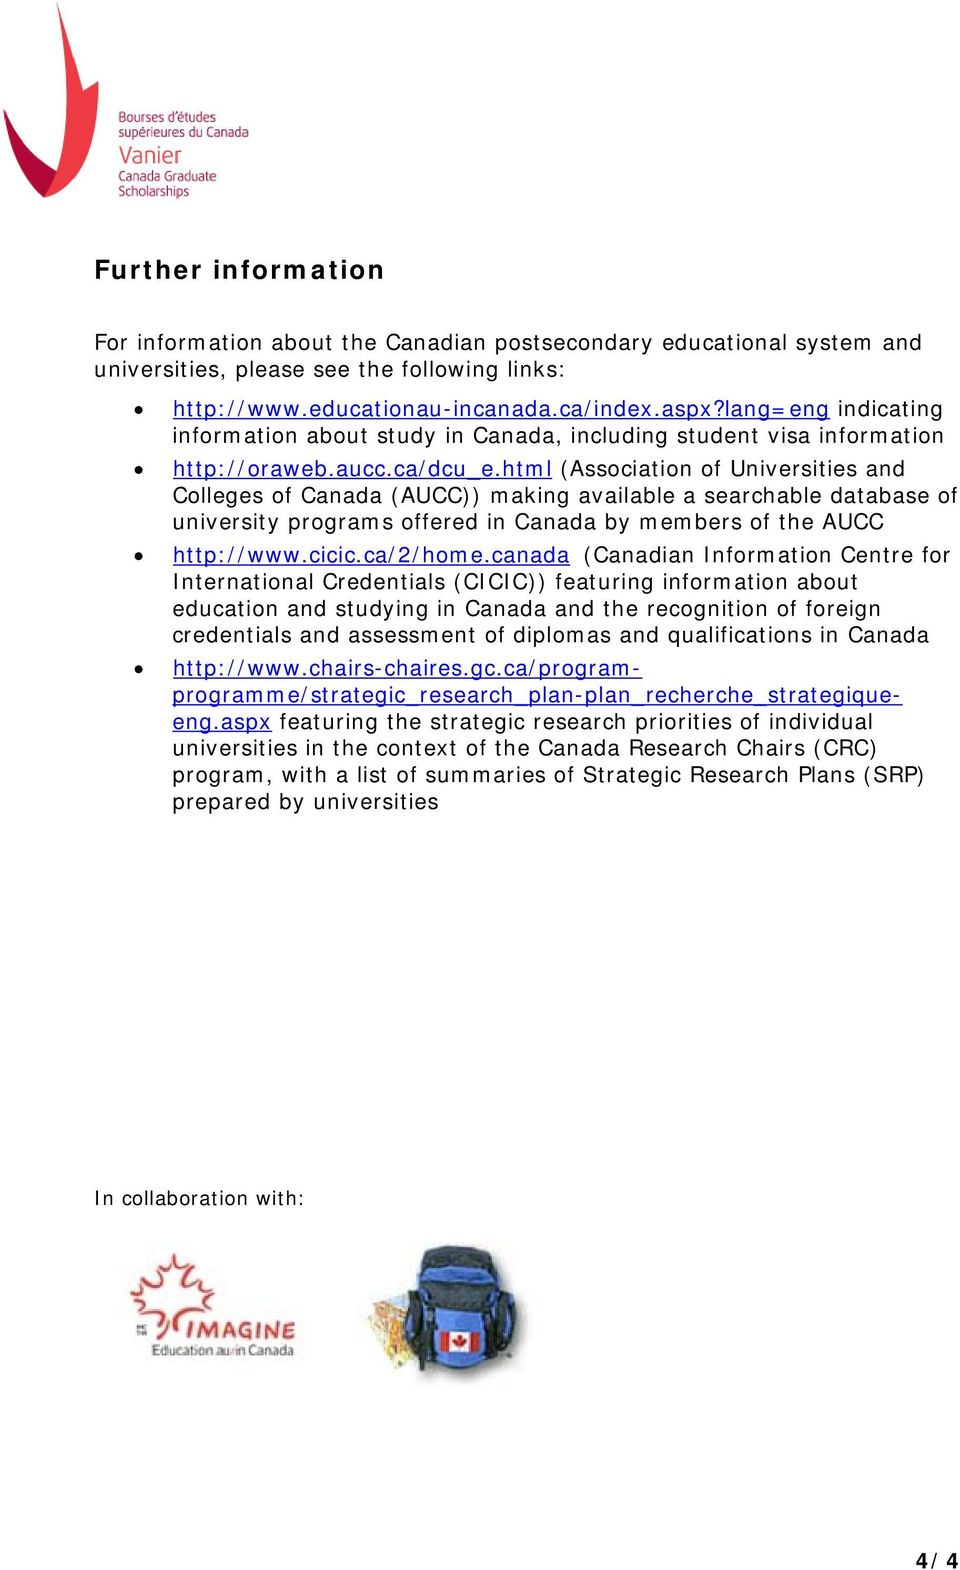 html (Association of Universities and Colleges of Canada (AUCC)) making available a searchable database of university programs offered in Canada by members of the AUCC http://www.cicic.ca/2/home.